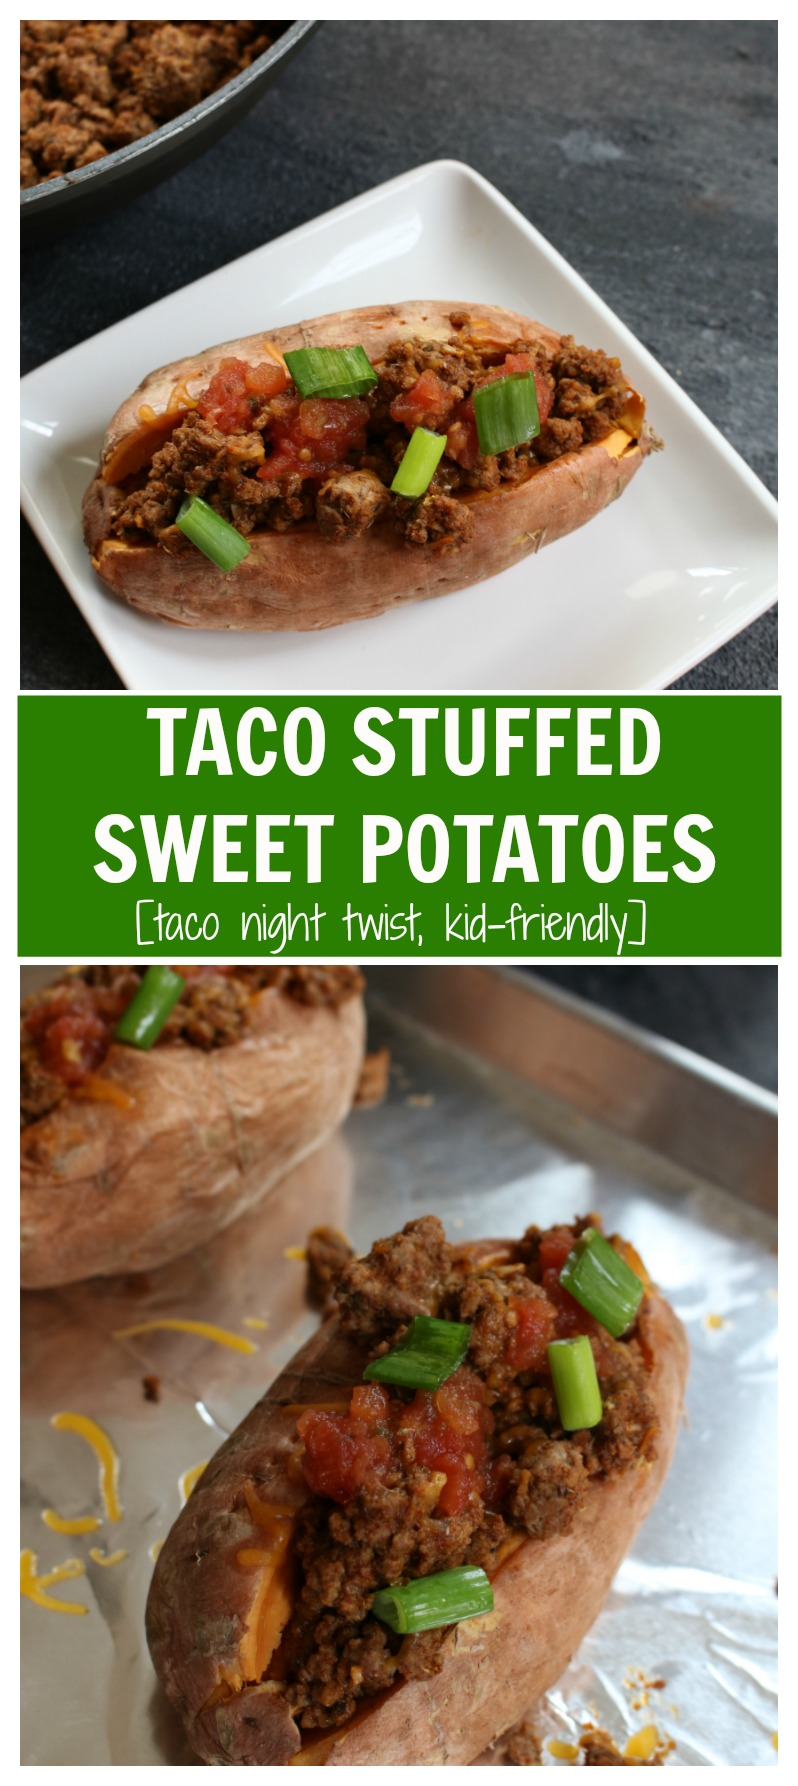 Taco stuffed sweet potatoes combine your favorite taco toppings with a nutritious sweet potato as a healthy base! Make this meal even quicker by cooking the sweet potatoes ahead of time.